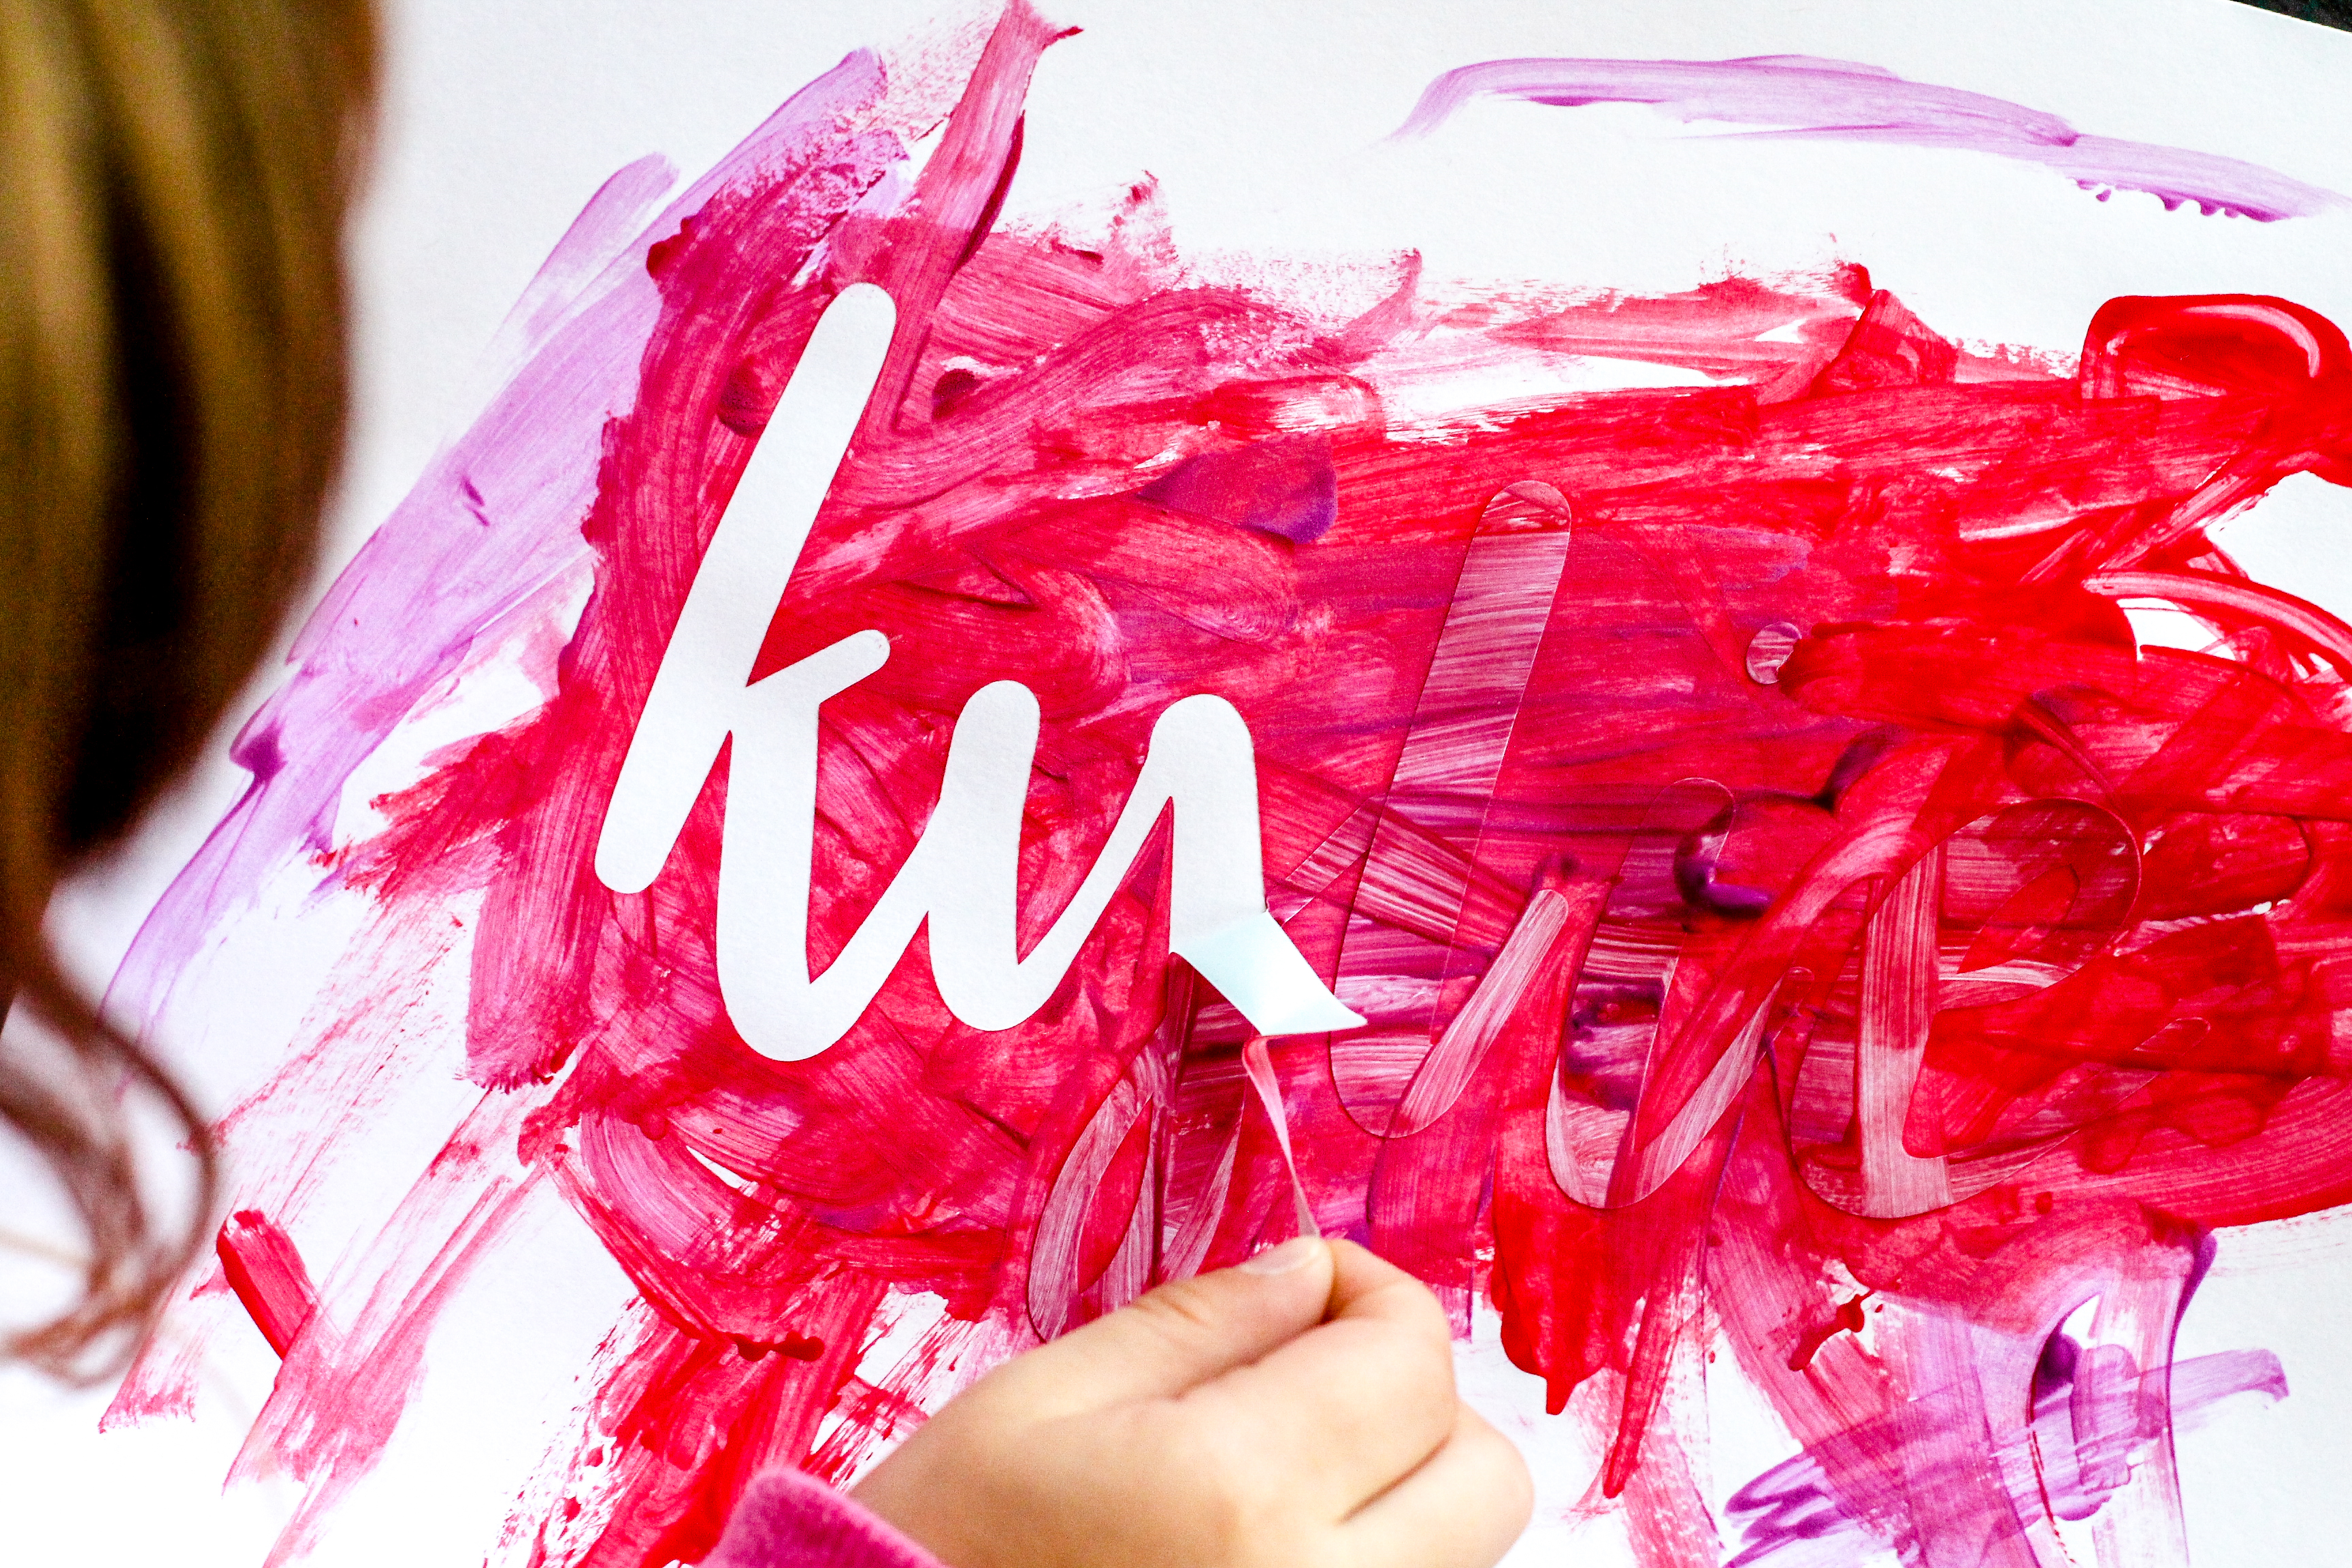 Vinyl Name Paint Art Crafts for Kids